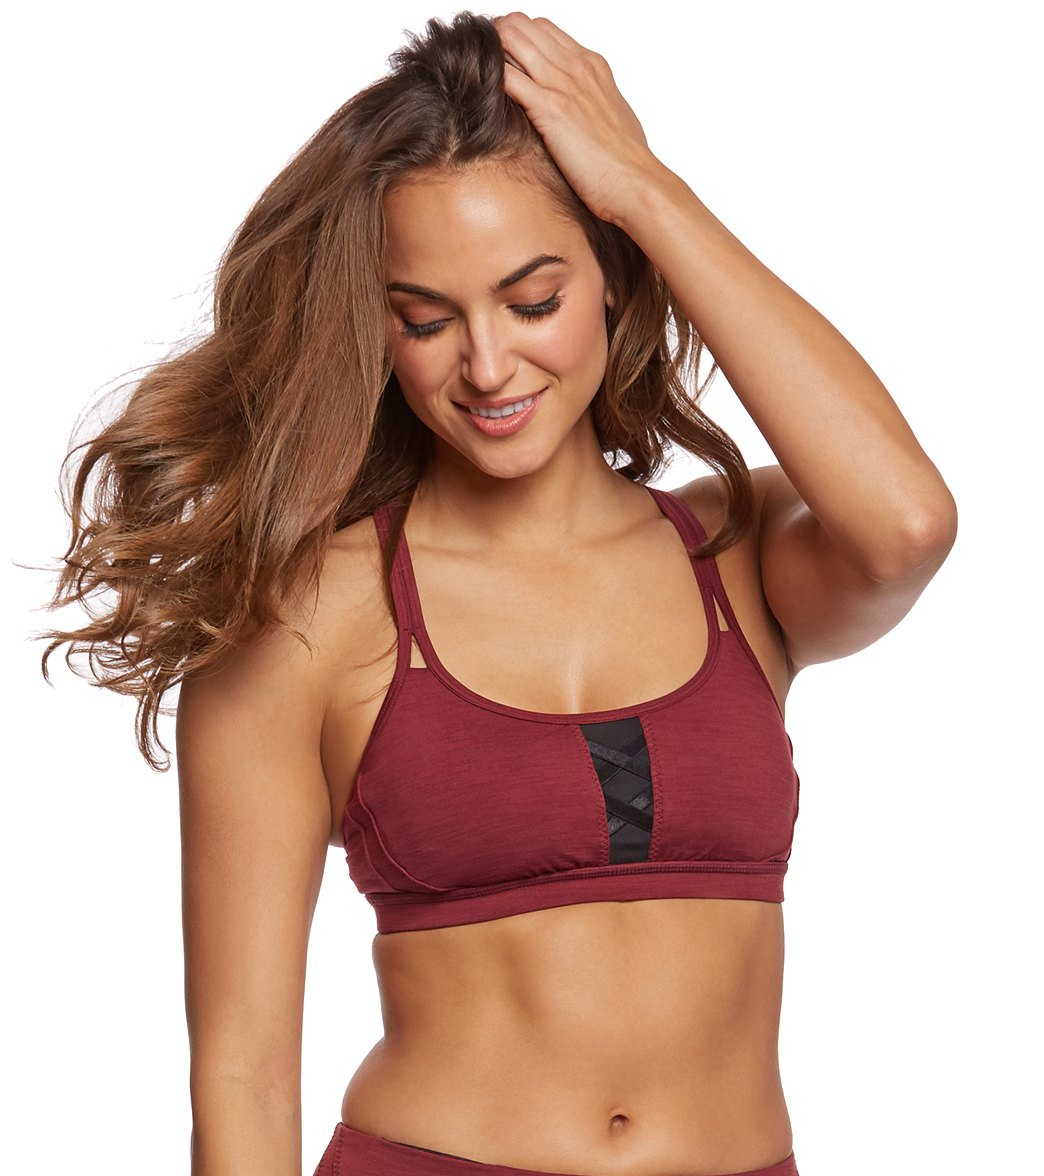 a255bbbfc6794 Manduka Corset Yoga Sports Bra at YogaOutlet.com - Free Shipping